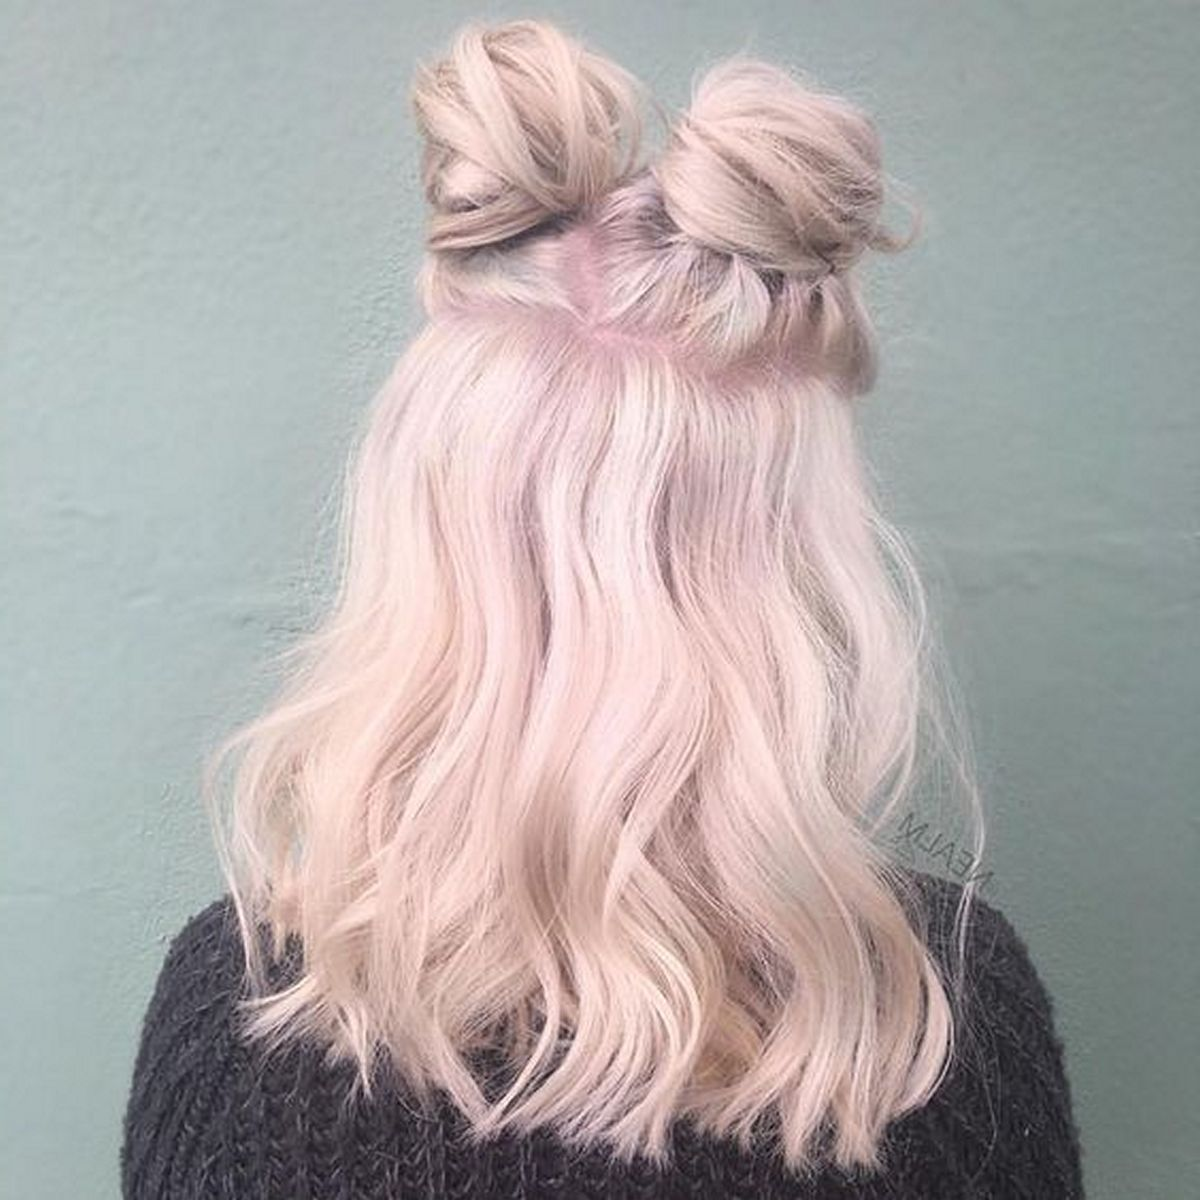 Colorful Pink Hairstyles (11) • DressFitMe